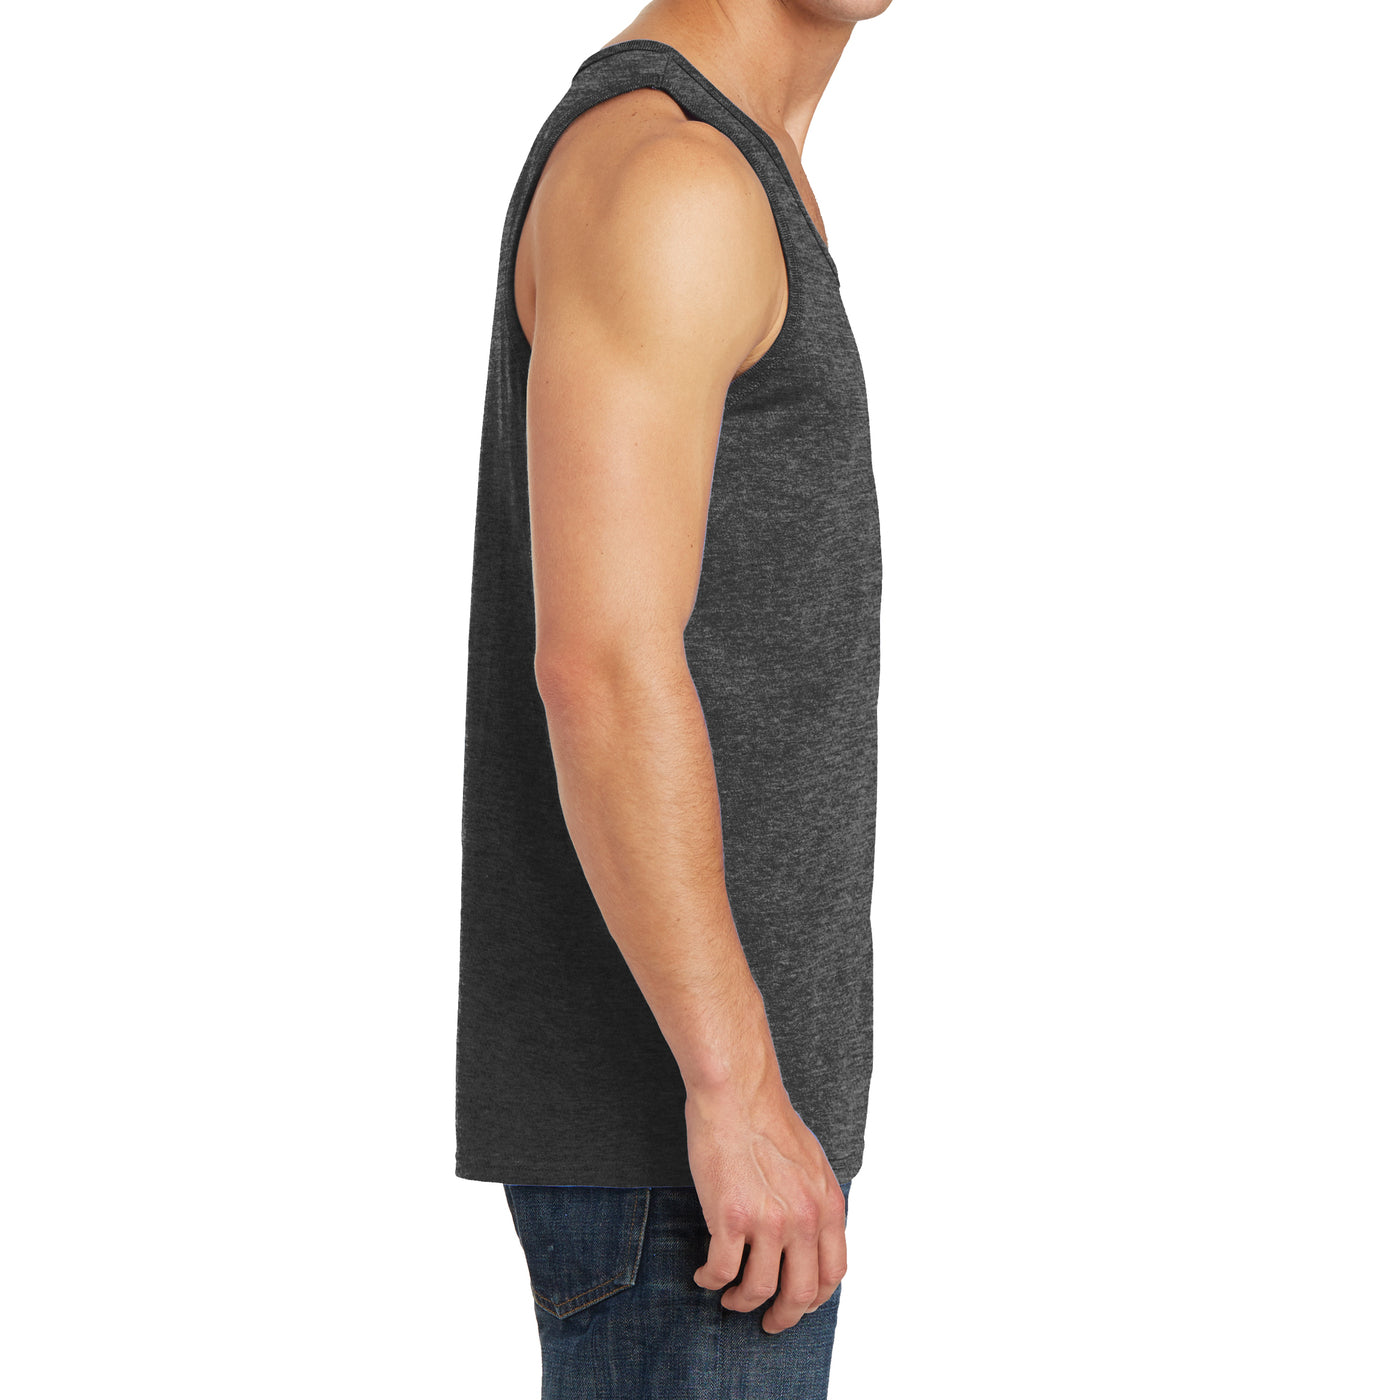 Men's Core Cotton Tank Top - Dark Heather Grey - Side